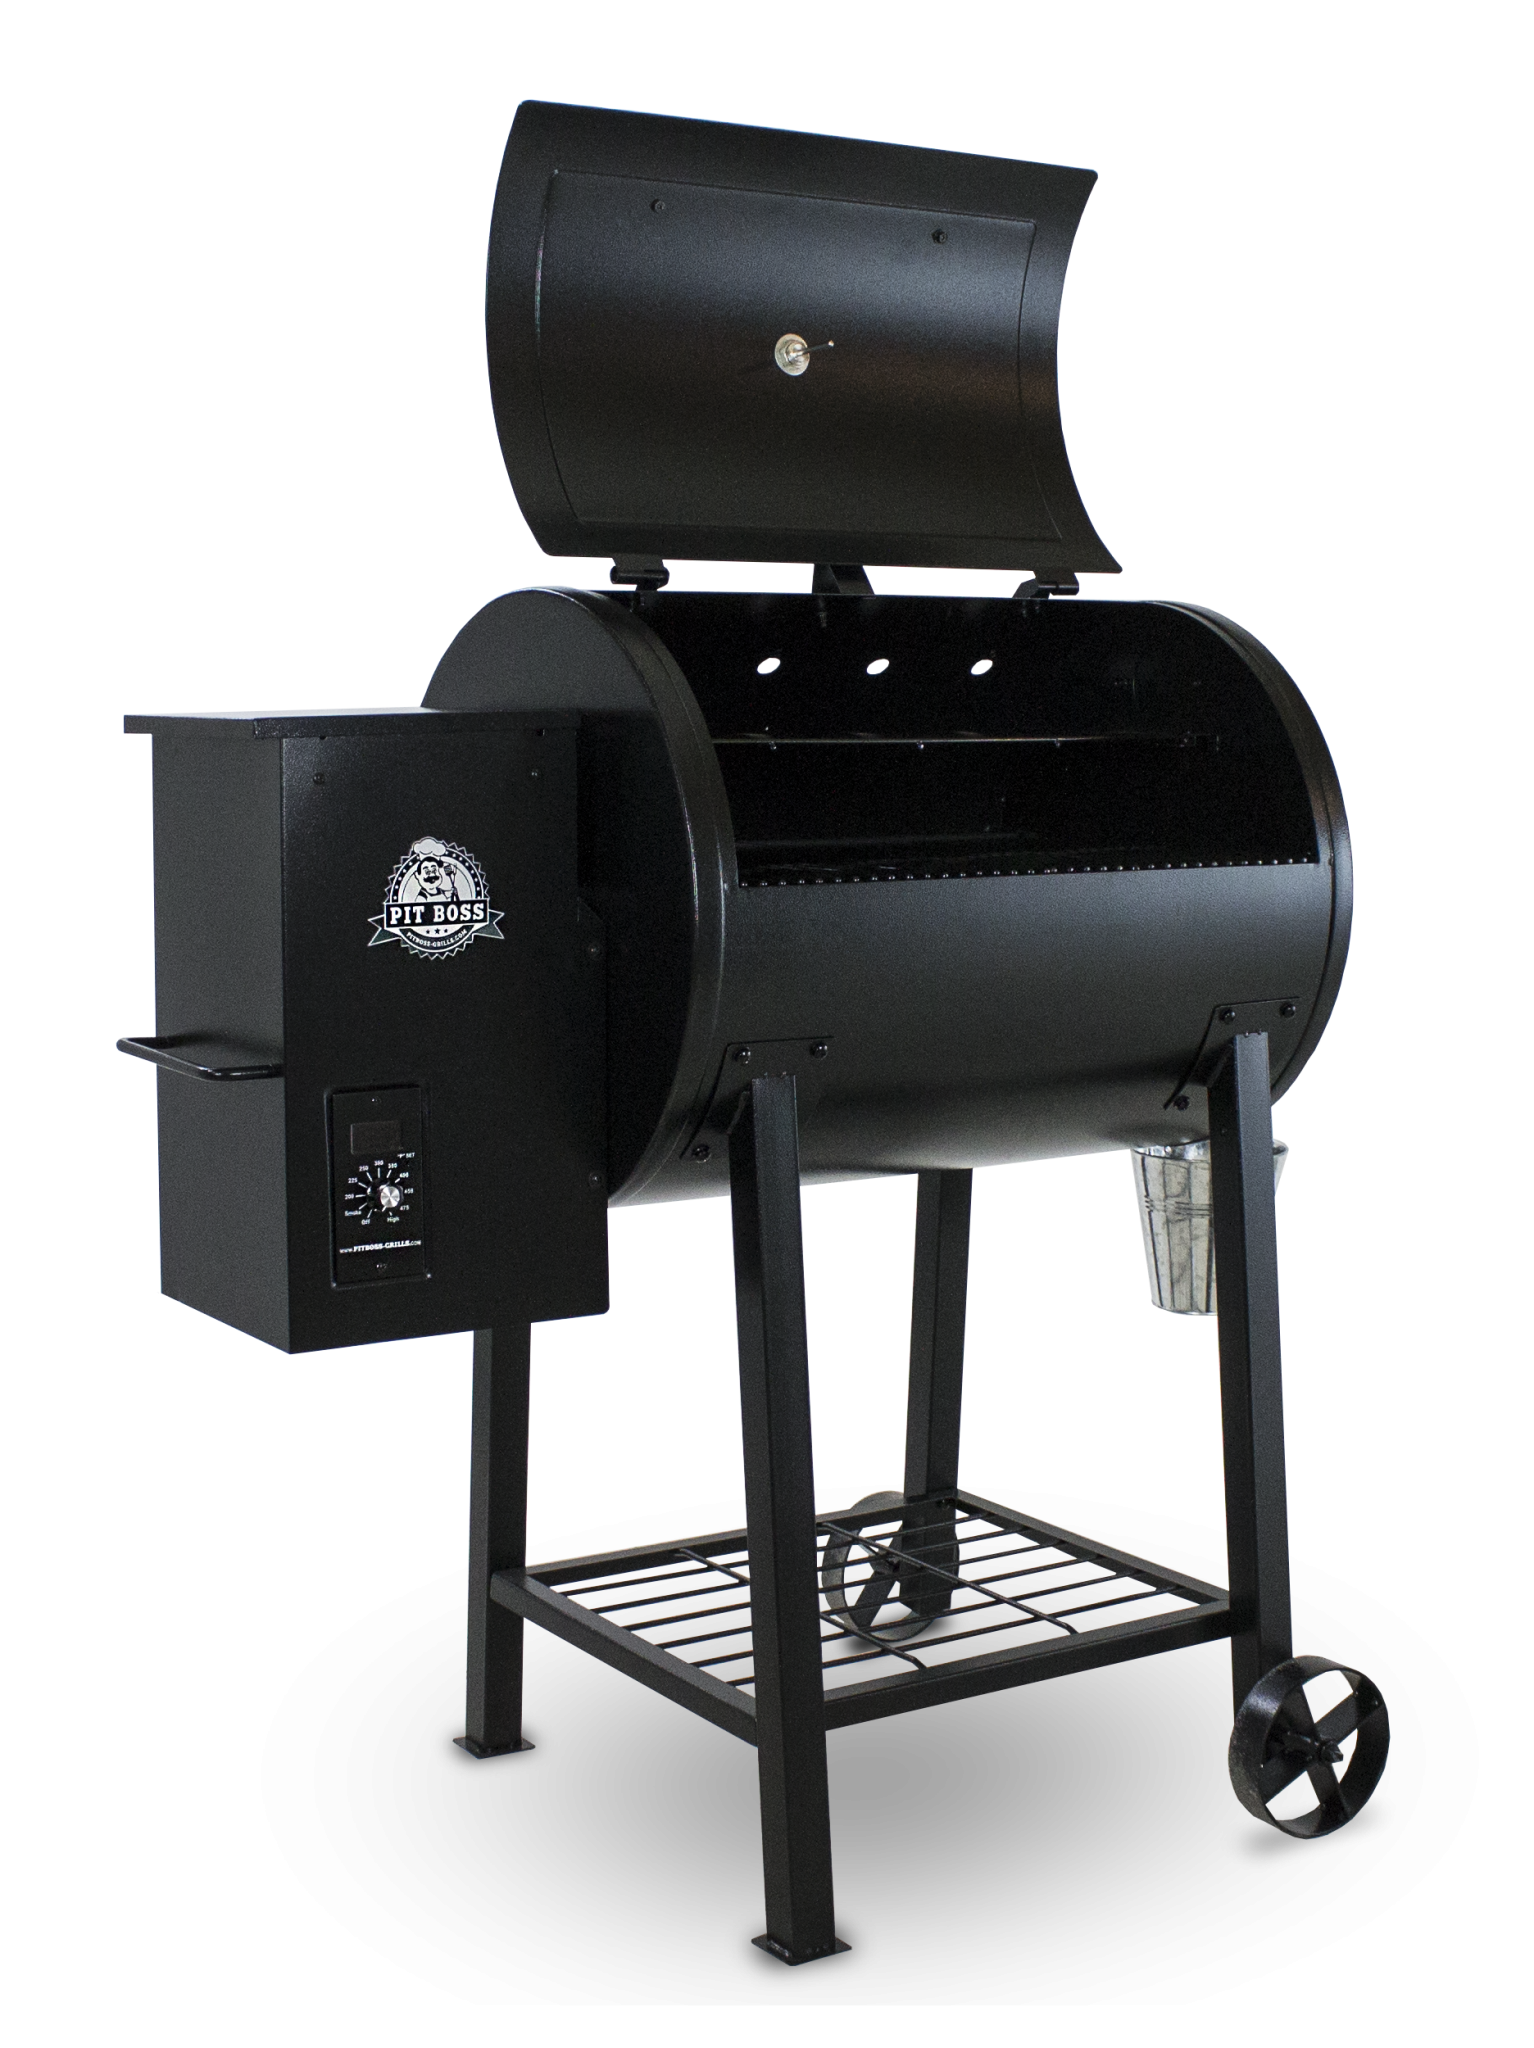 pit boss pellet grill review november 2017